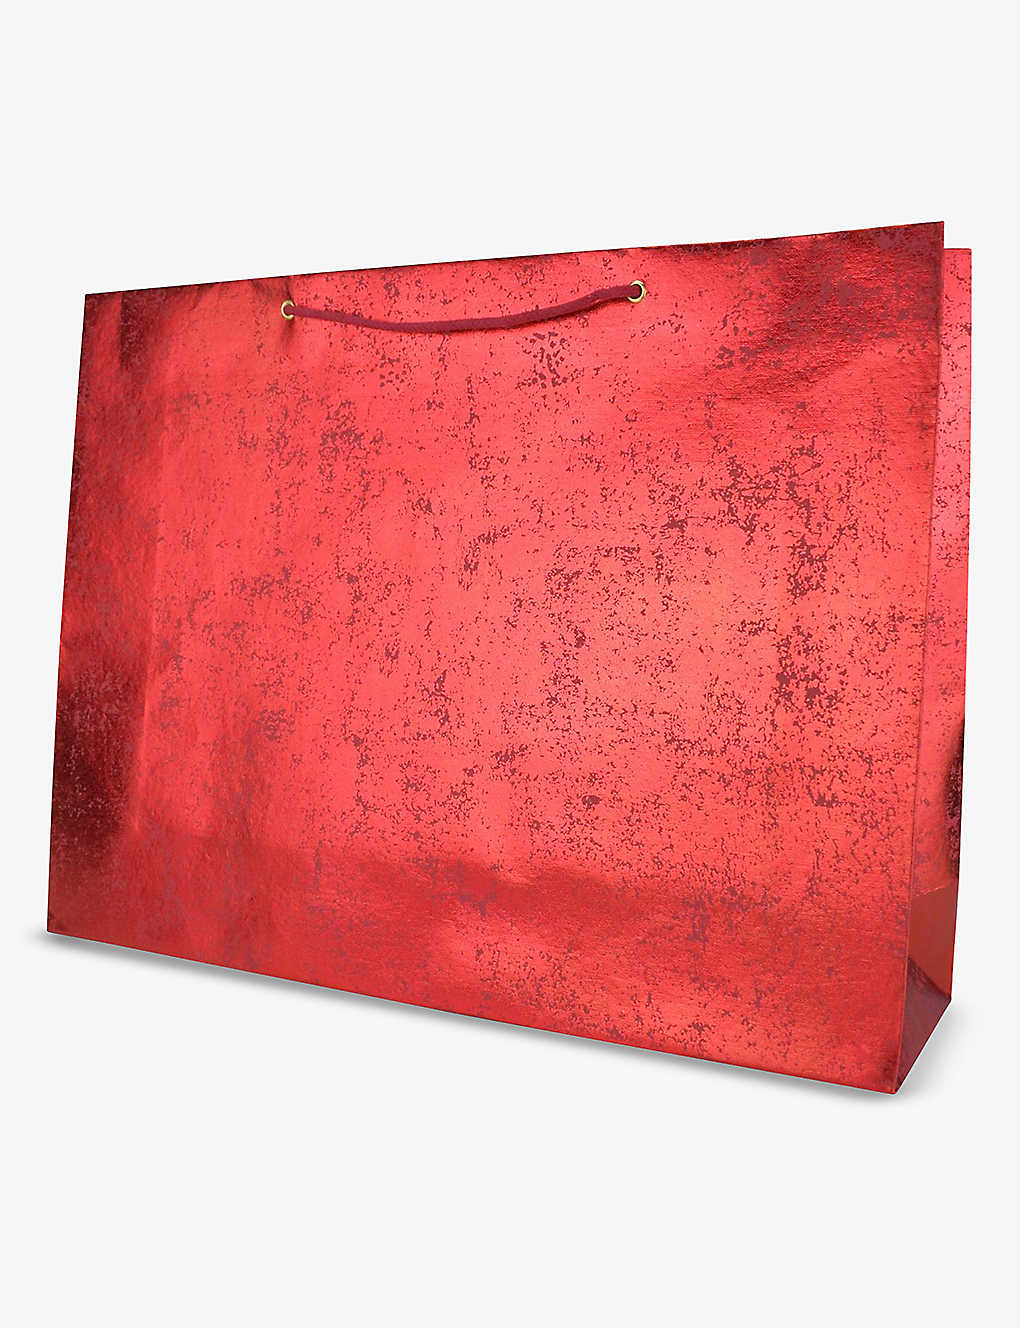 VIVID WRAP: Red Crush extra-large recycled-cotton paper gift bag